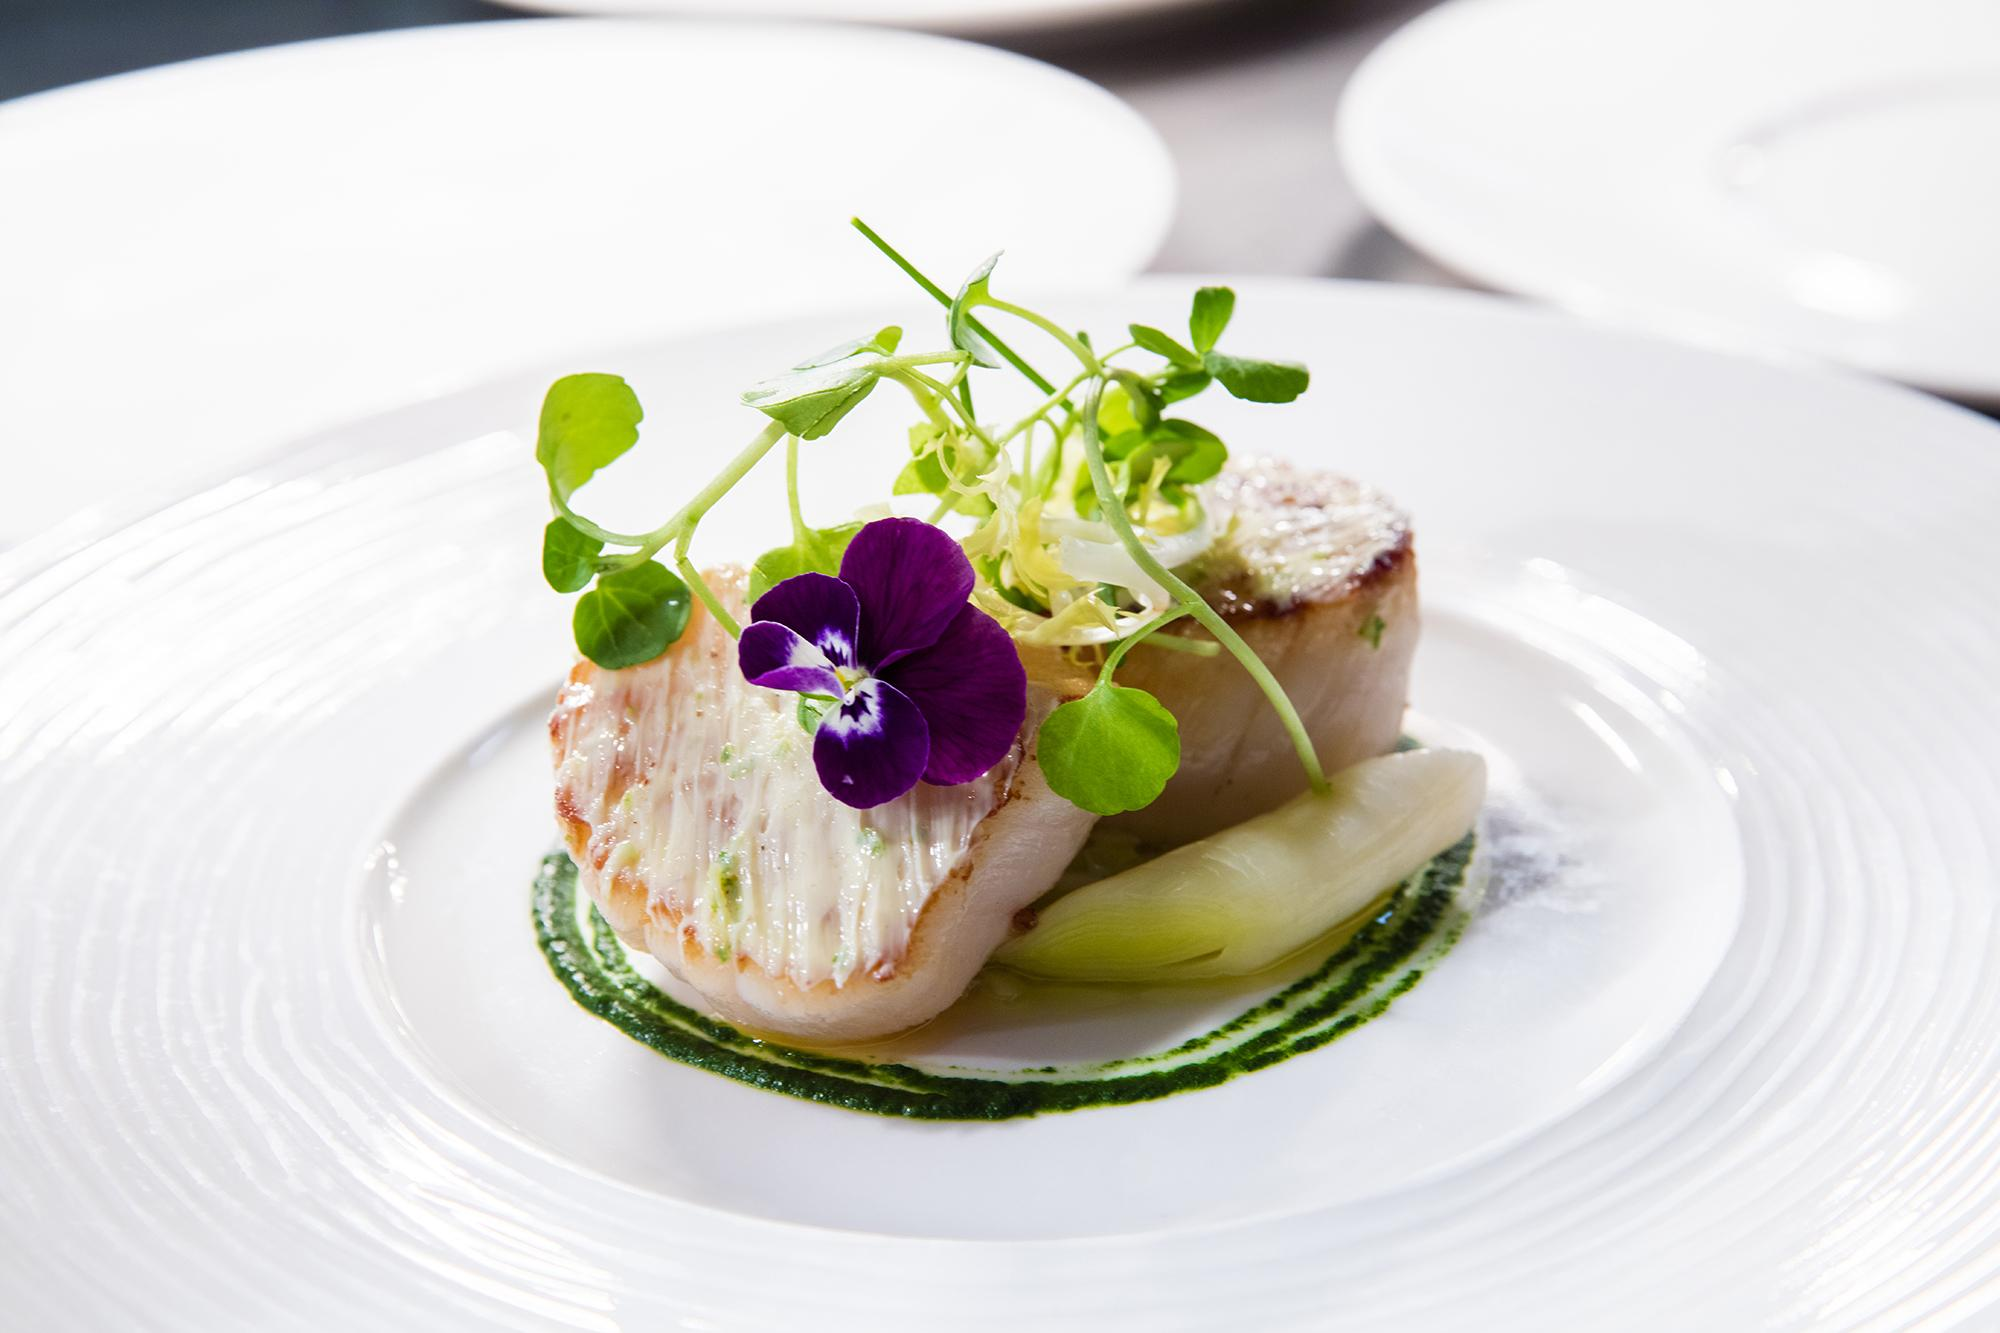 Chenestons Restaurant at The Milestone Hotel and Residences - London